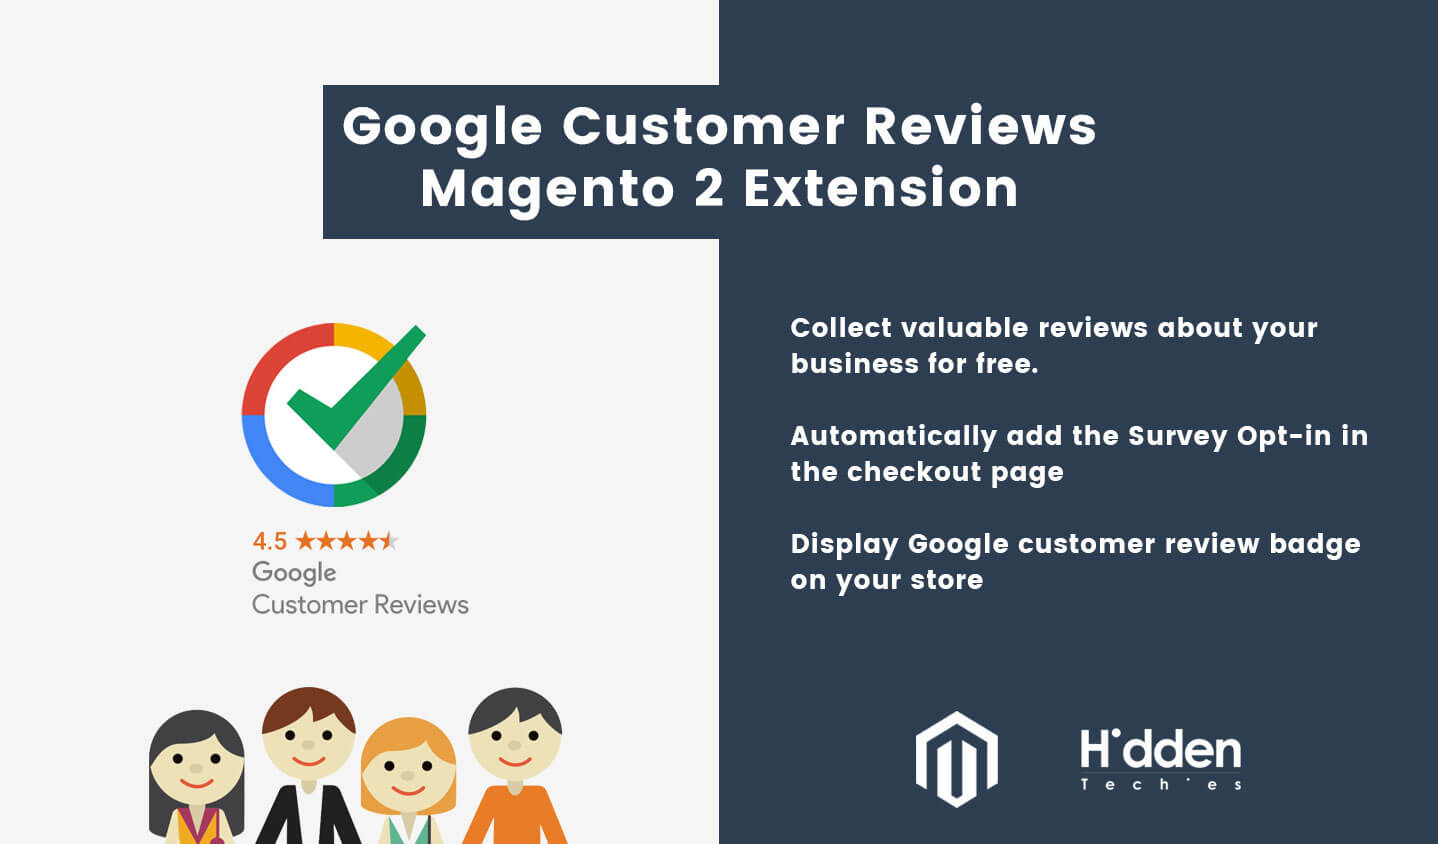 Google Customer Reviews Magento 2 Extension